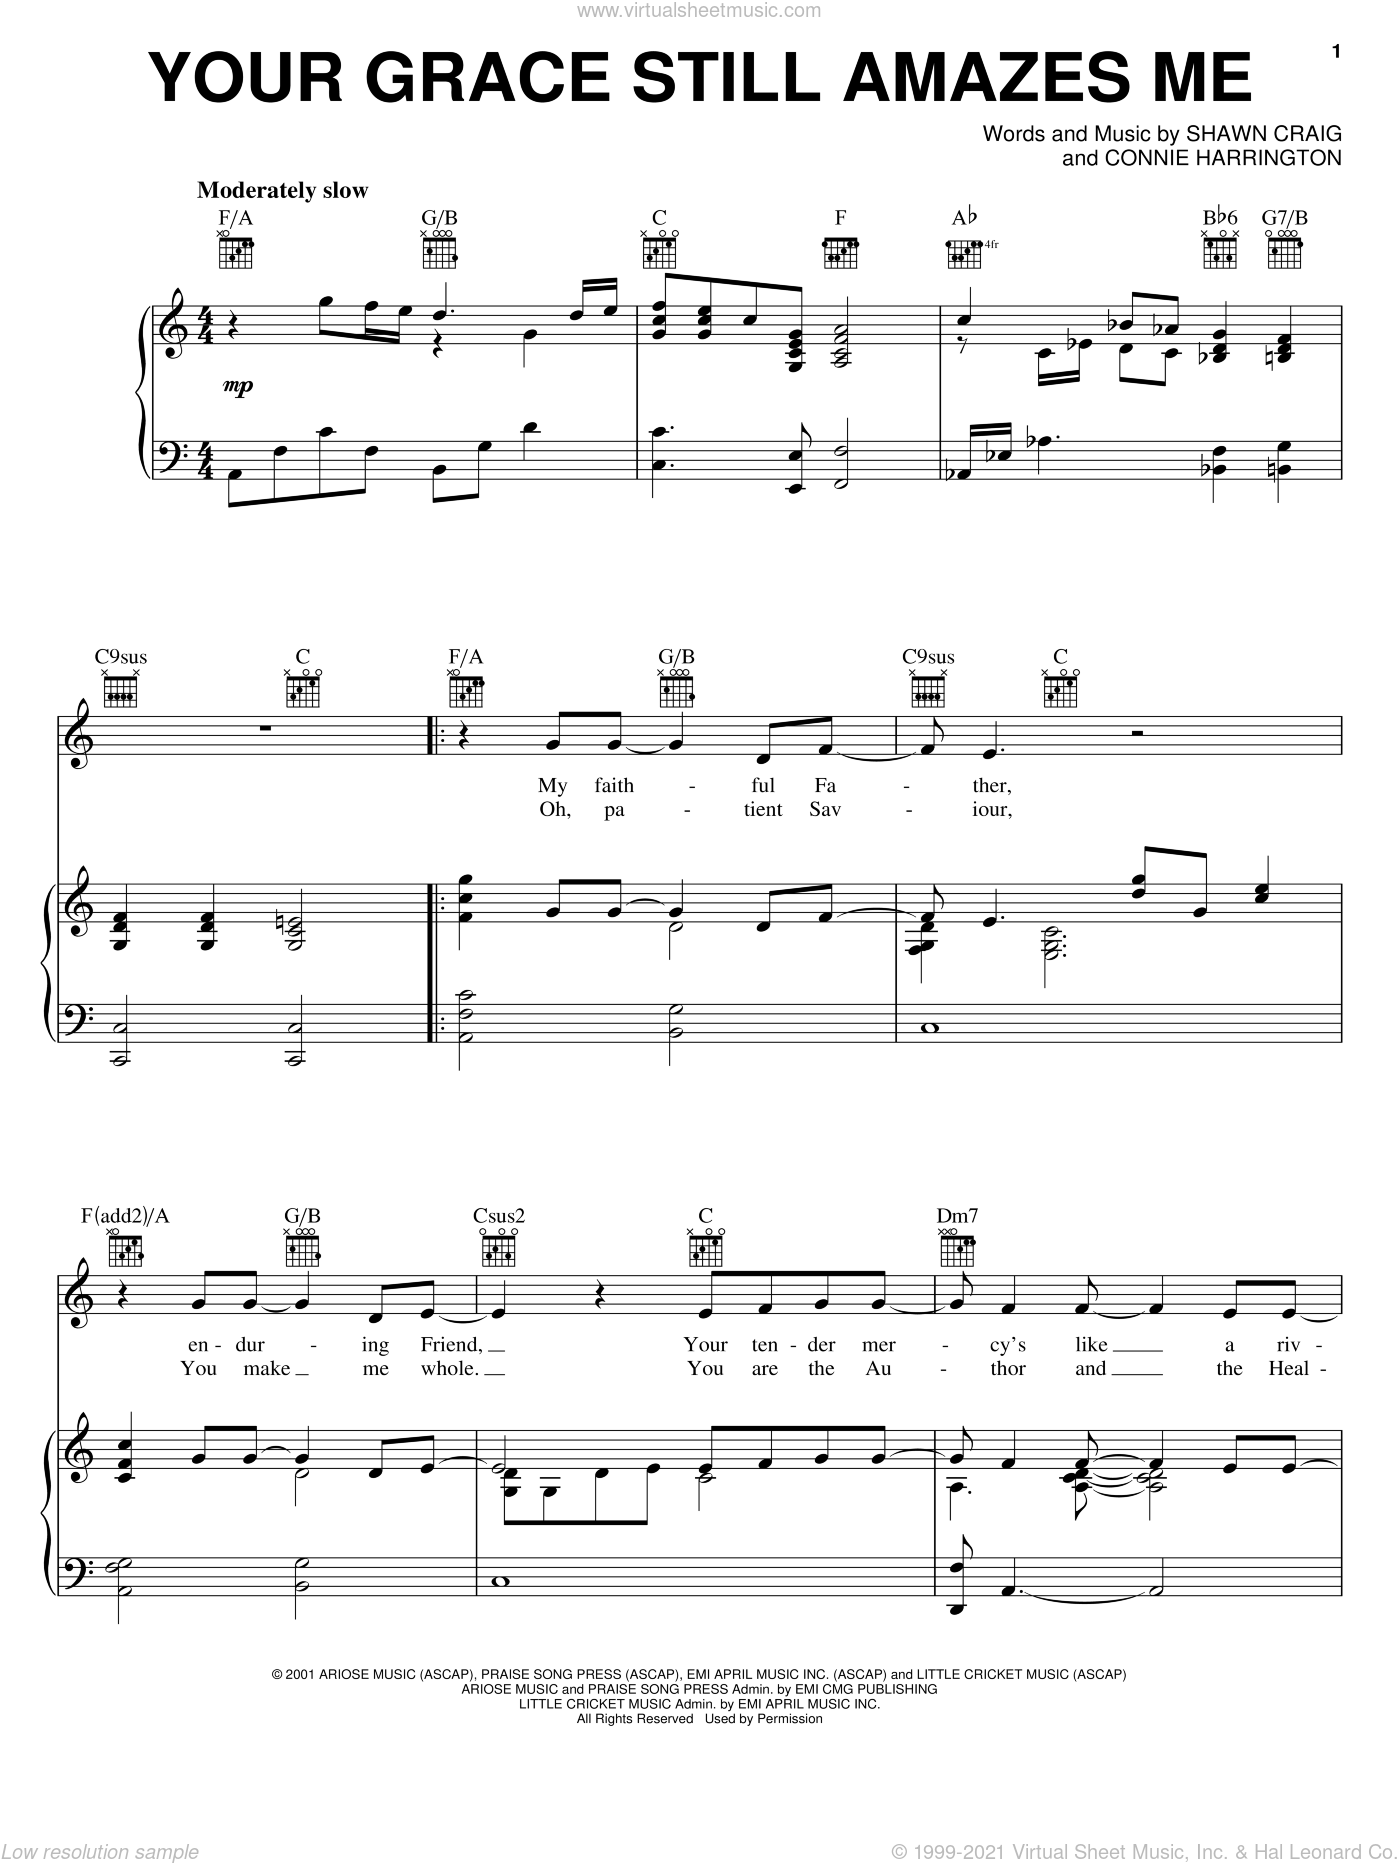 Your Grace Still Amazes Me sheet music for voice, piano or guitar by Shawn Craig, Phillips, Craig & Dean and Connie Harrington. Score Image Preview.